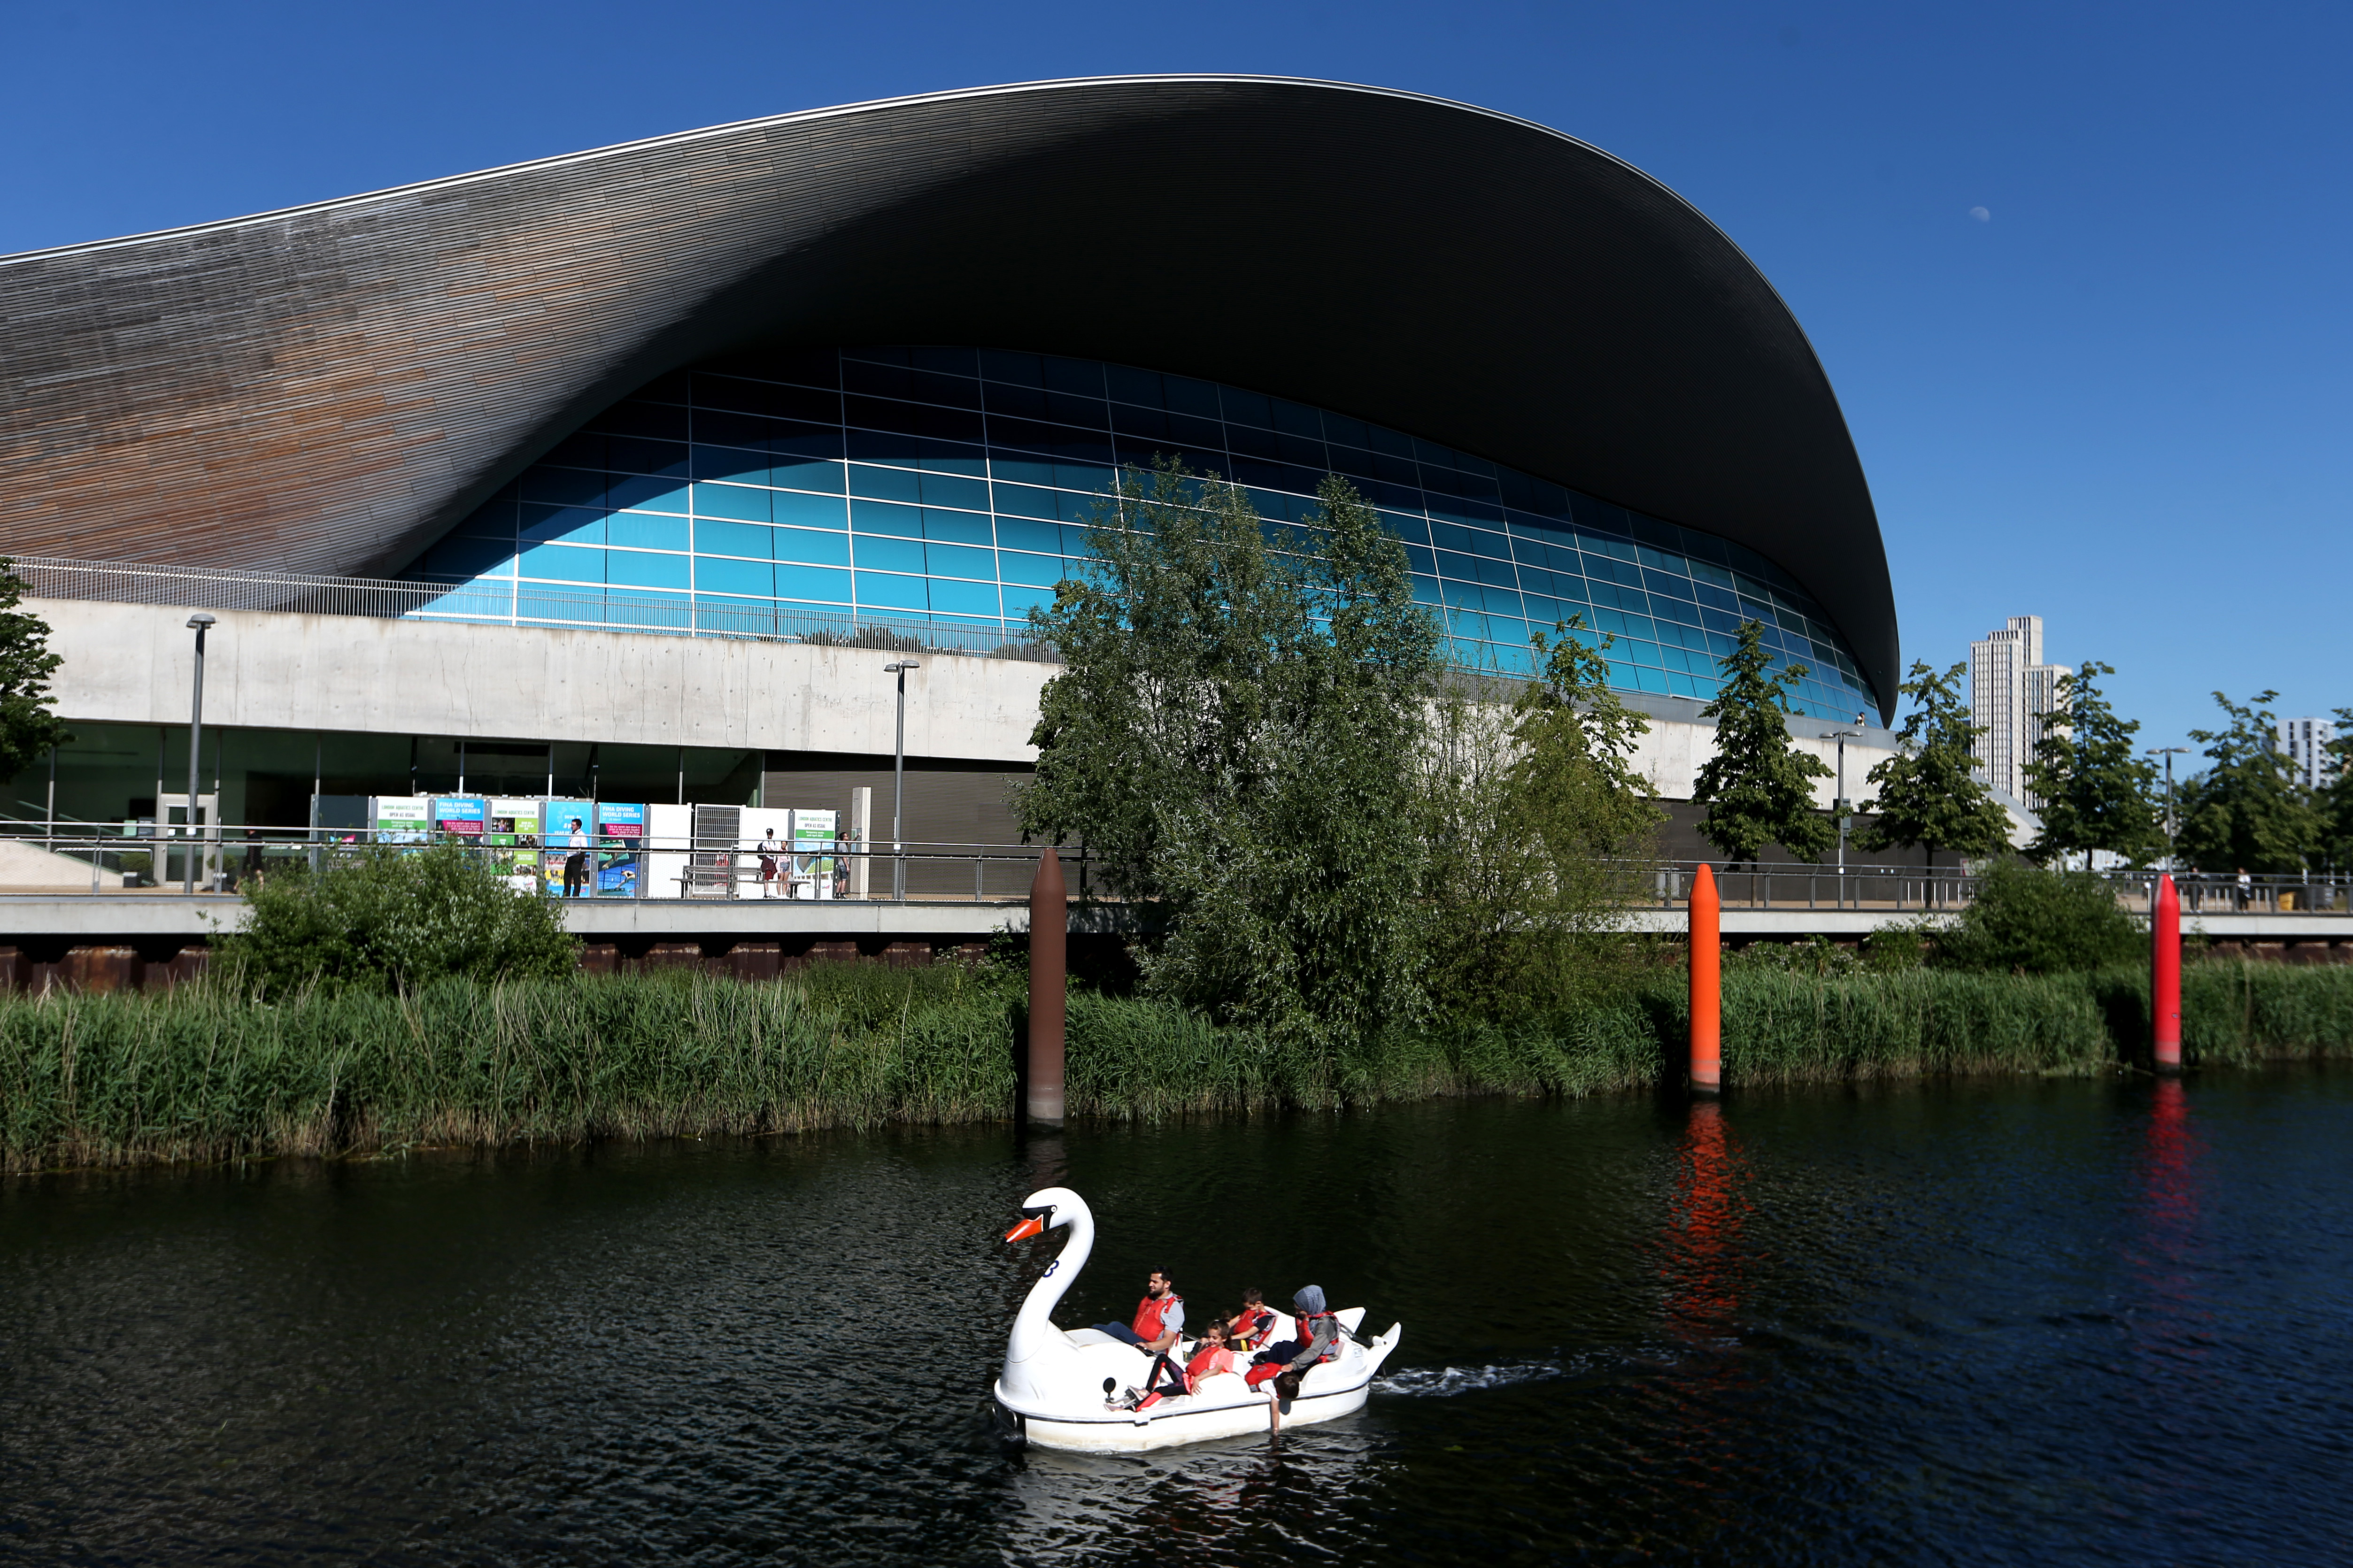 LONDON, ENGLAND  - MAY 31: People in pedalo's go through the Olympic Park in Stratford on May 31, 2020 in London, England. The British government continues to ease the coronavirus lockdown by announcing schools will open to reception year pupils plus years one and six from June 1st. Open-air markets and car showrooms can also open from the same date.  (Photo by Alex Pantling/Getty Images)